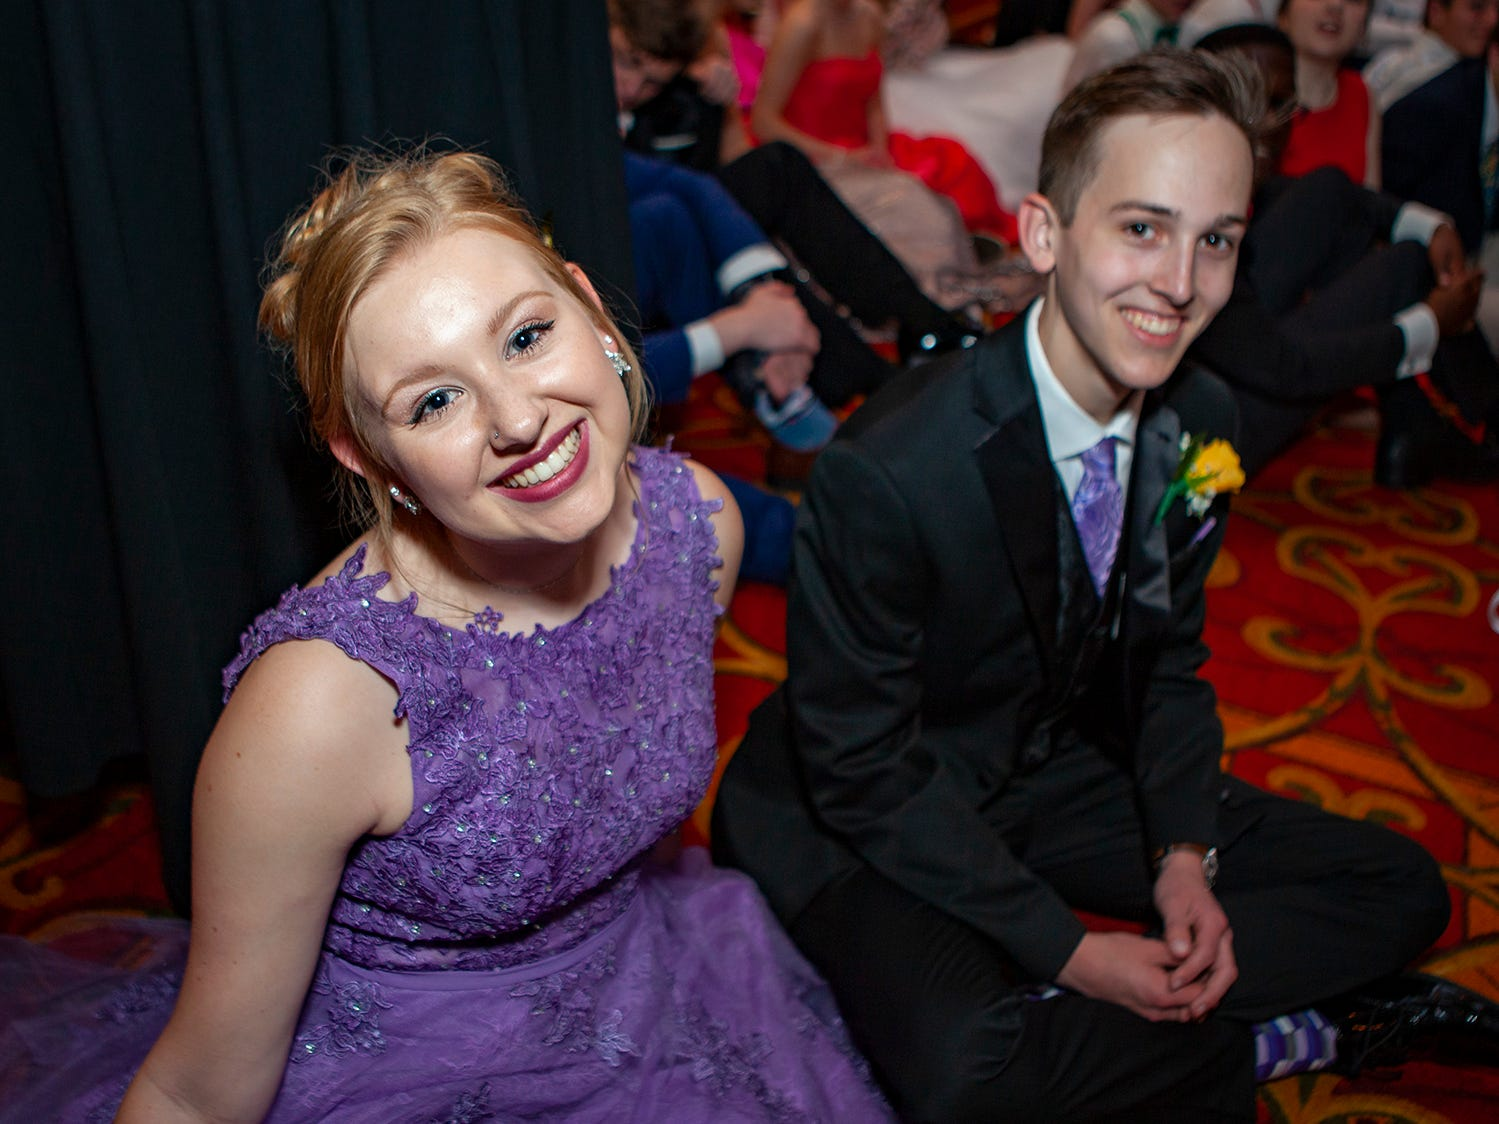 Central Magnet School held its prom Saturday, April 6 at Embassy Suites in Murfreesboro.